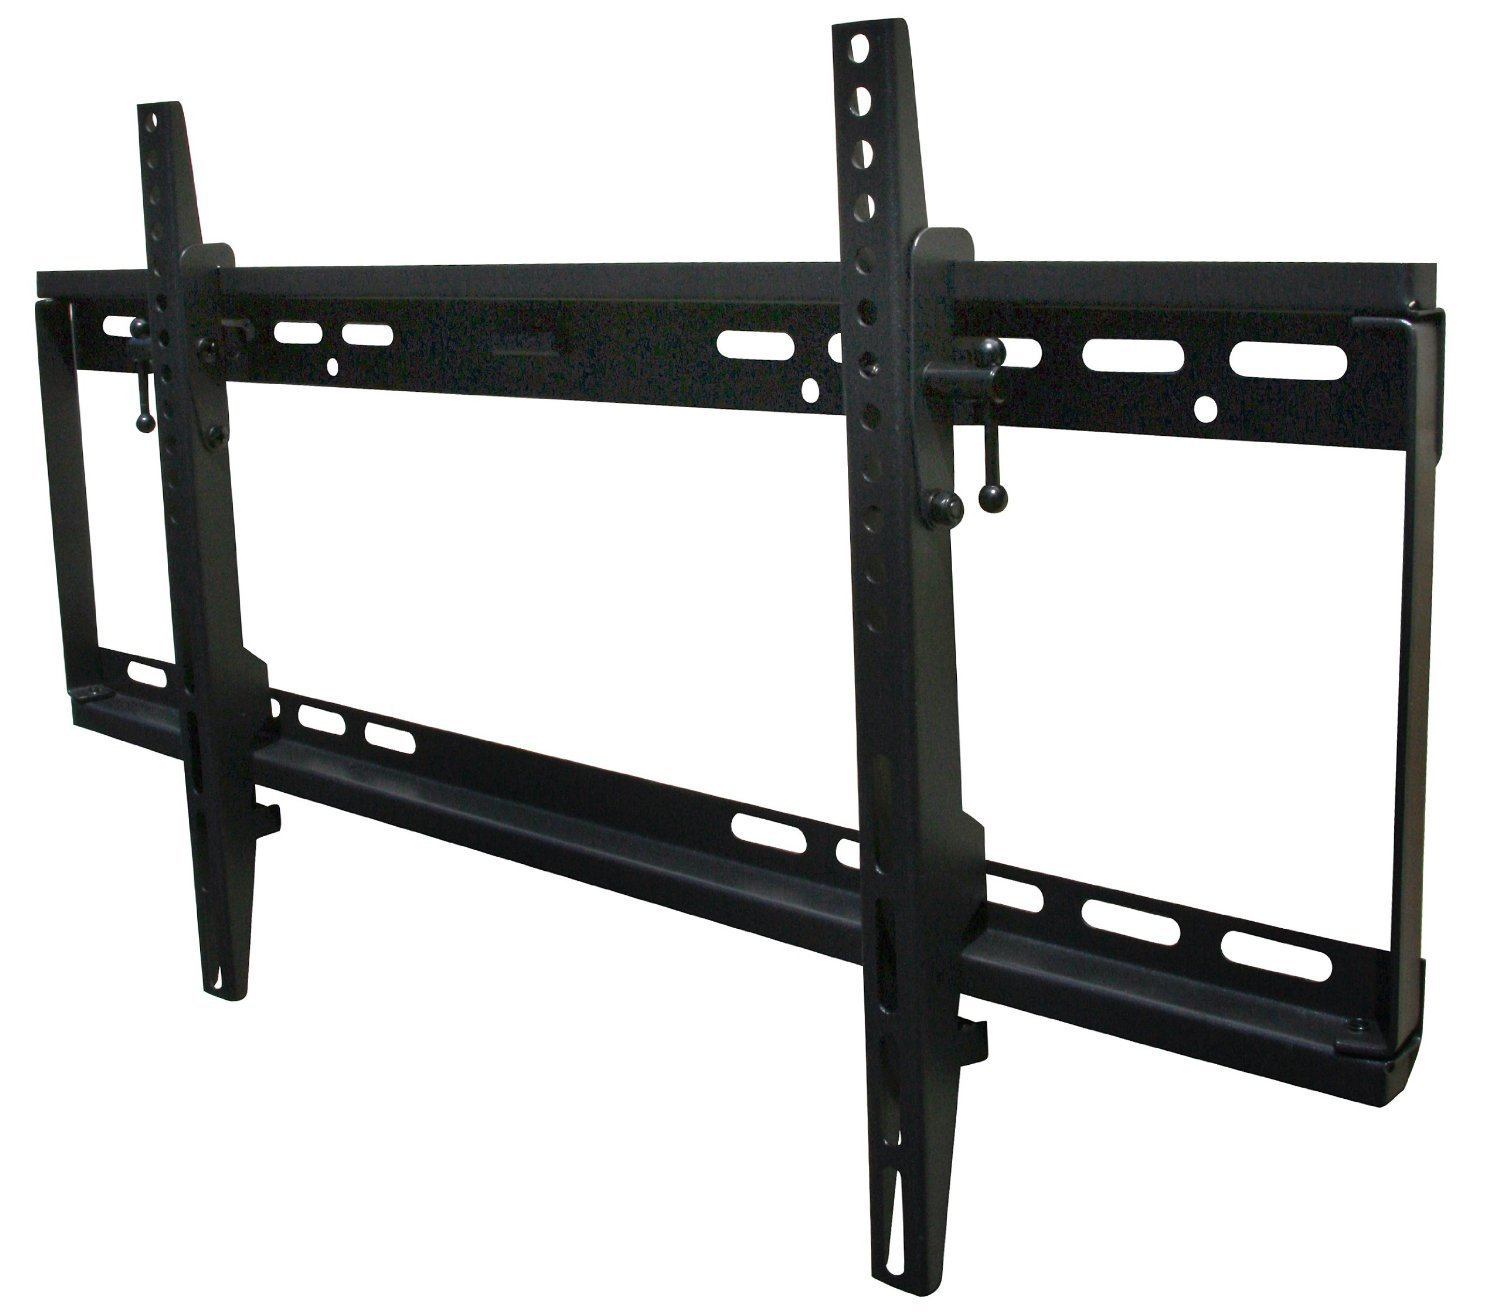 Mount-it! MI-1121M-CBL TV Wall Mount Bracket Low Profile Tilt Design for 32 to 65 Inch LCD/LED/4K TVs, VESA 600x400 mm (MI-1121M)